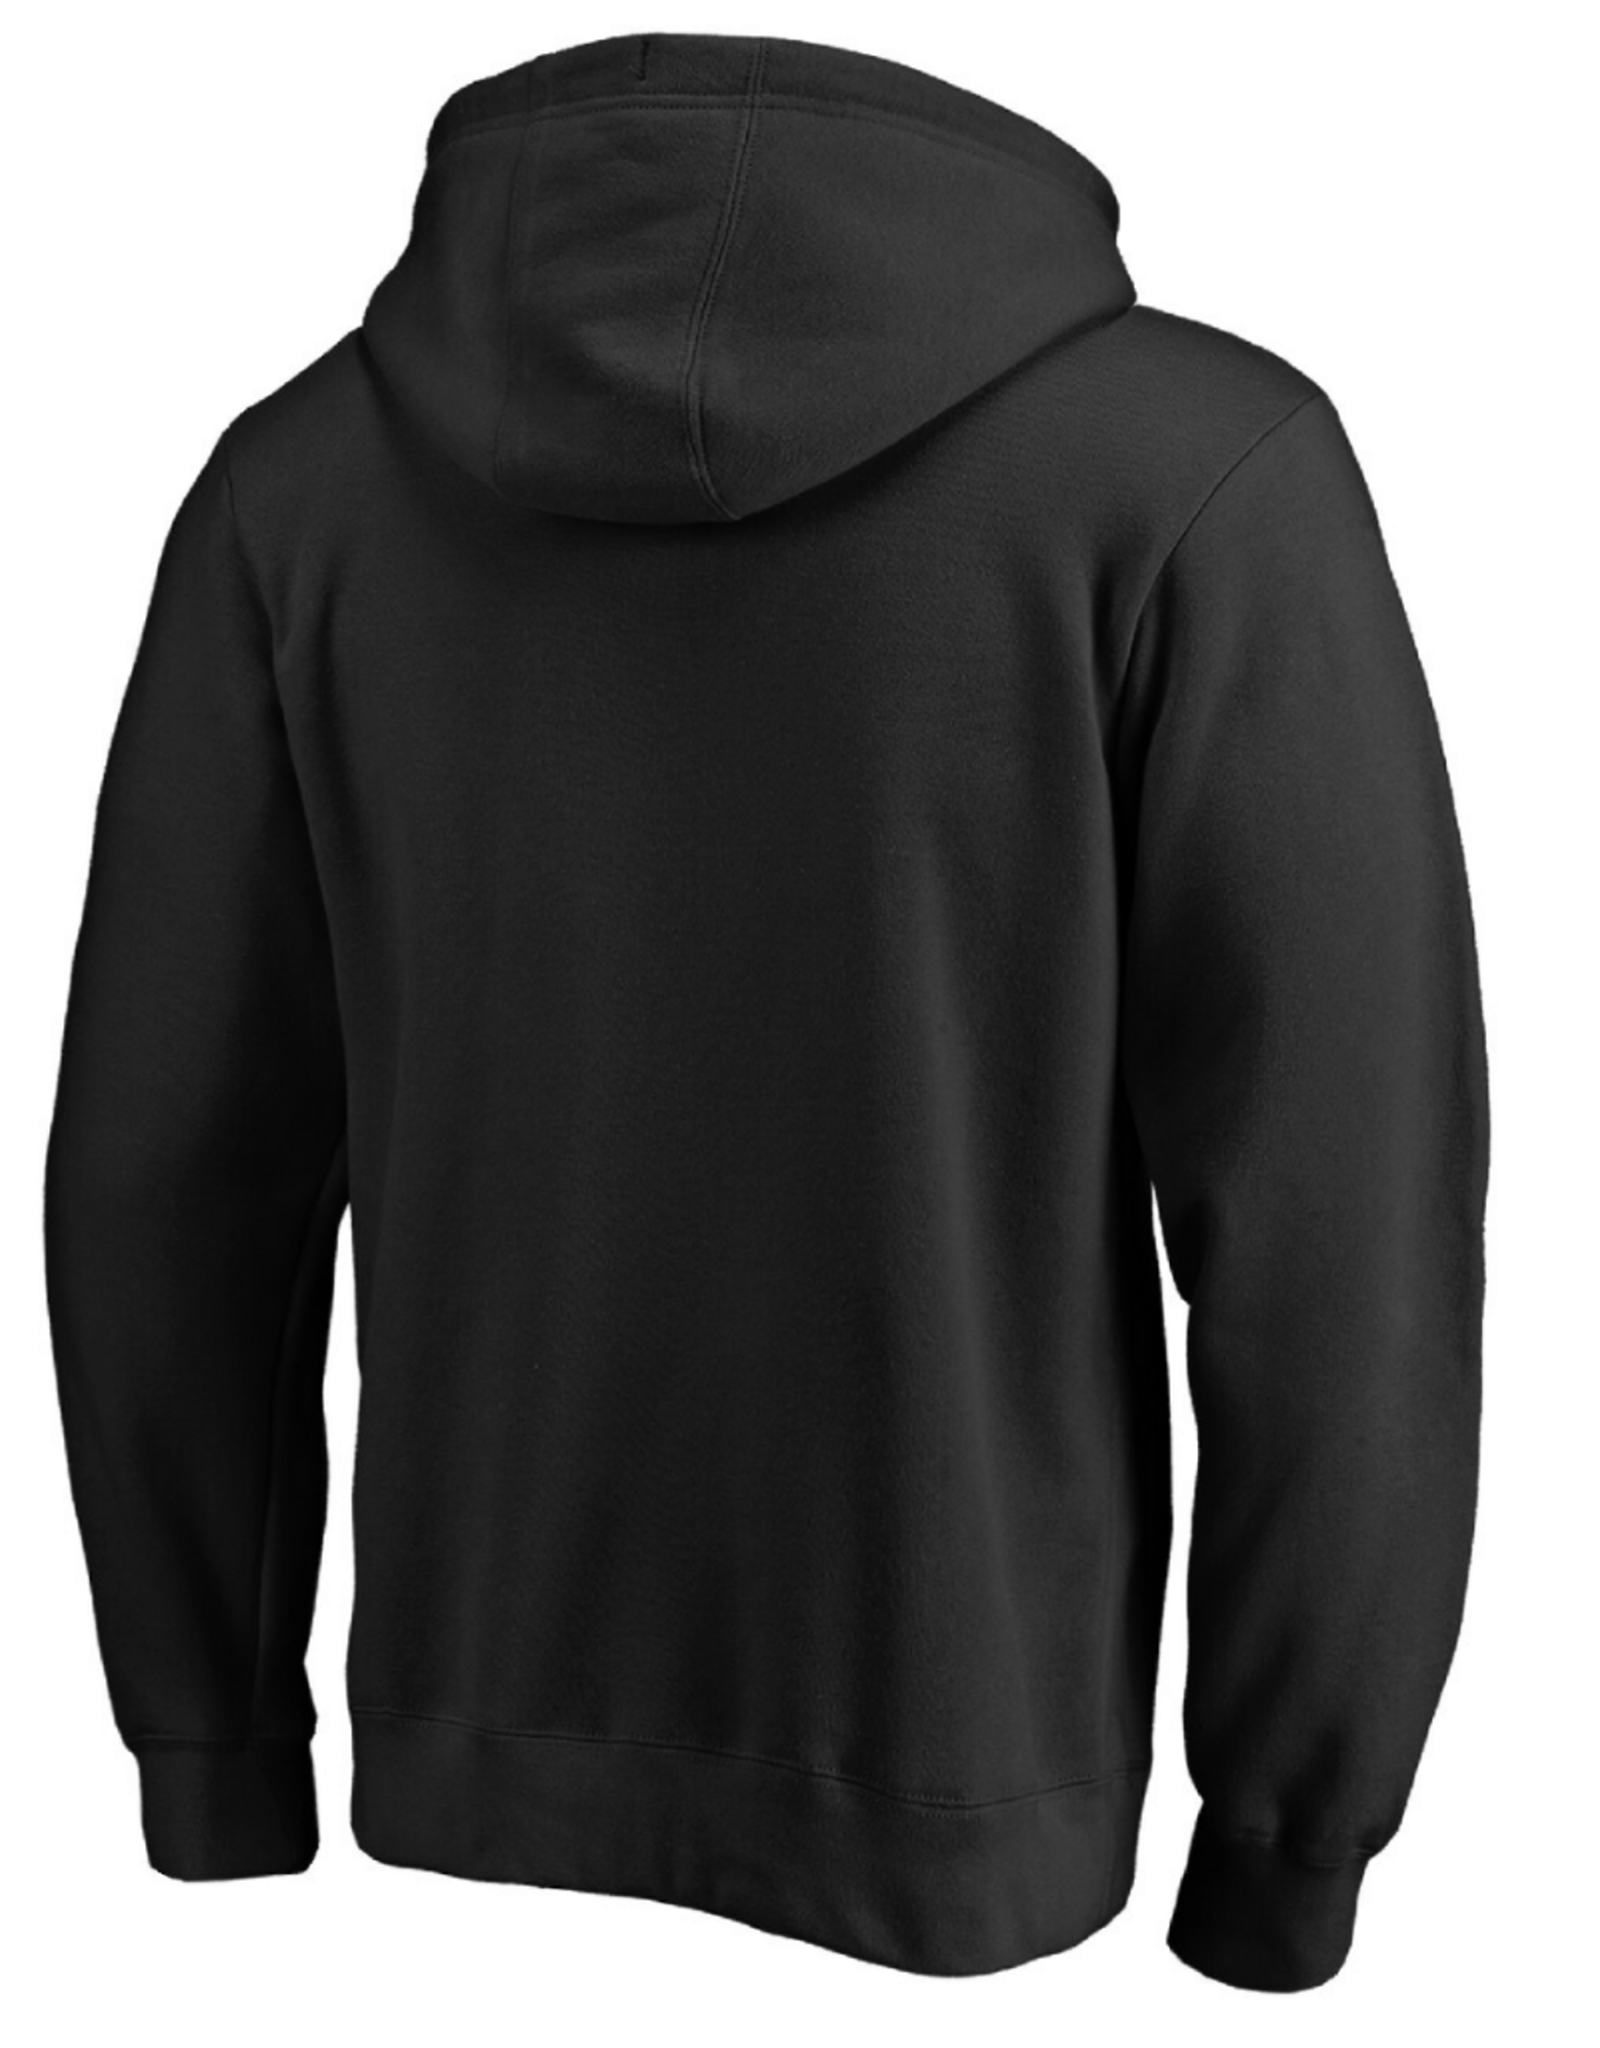 Fanatics Fanatics Men's Engage Hoodie Vegas Golden Knights Black